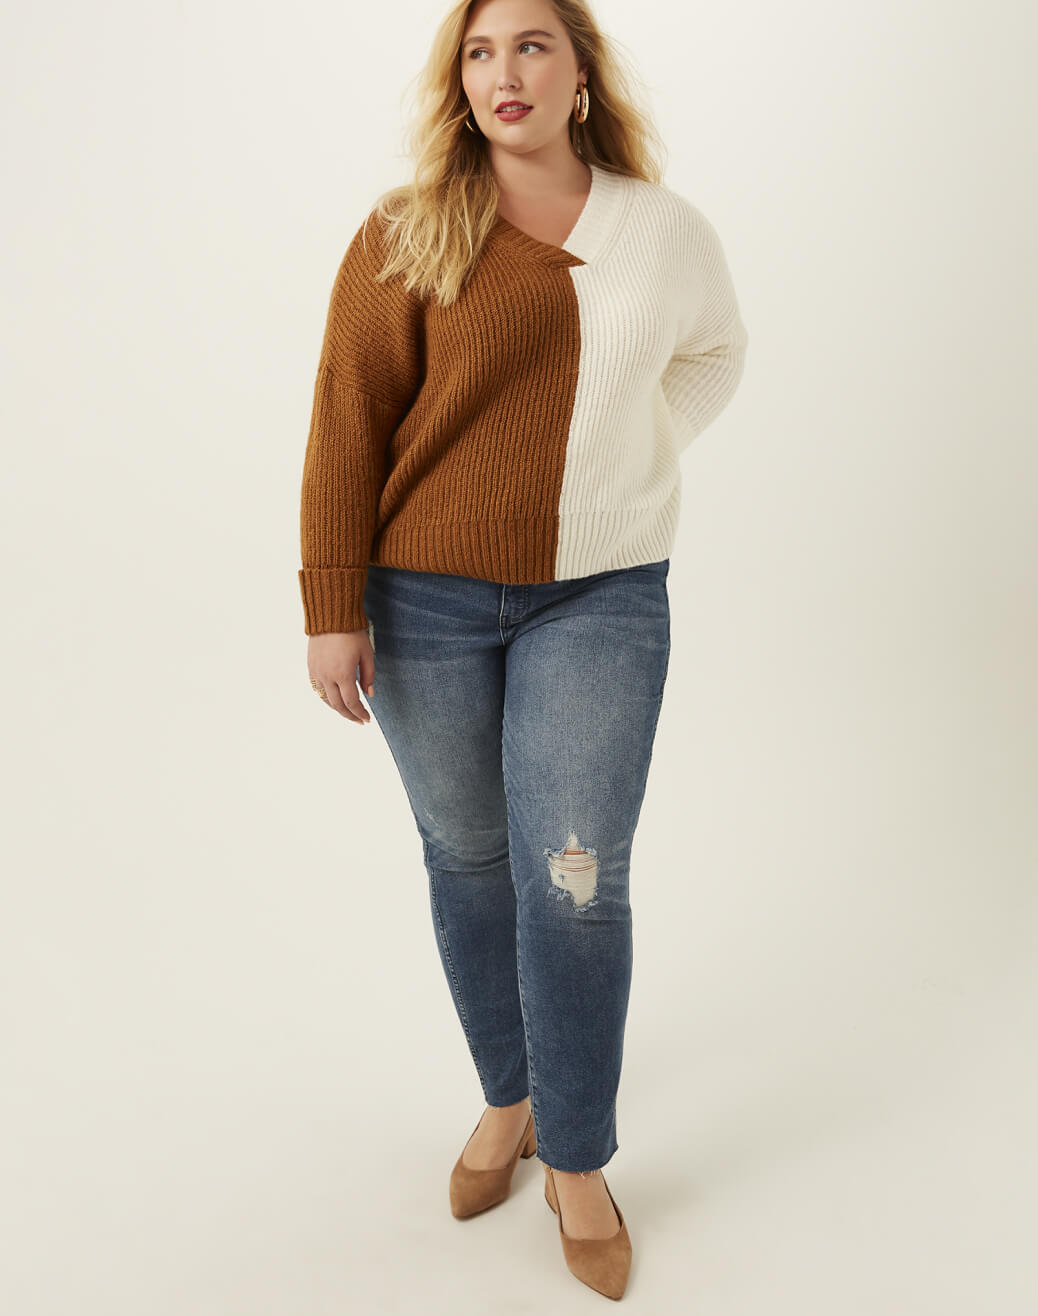 Woman in plus size jeans and brown and white sweater.